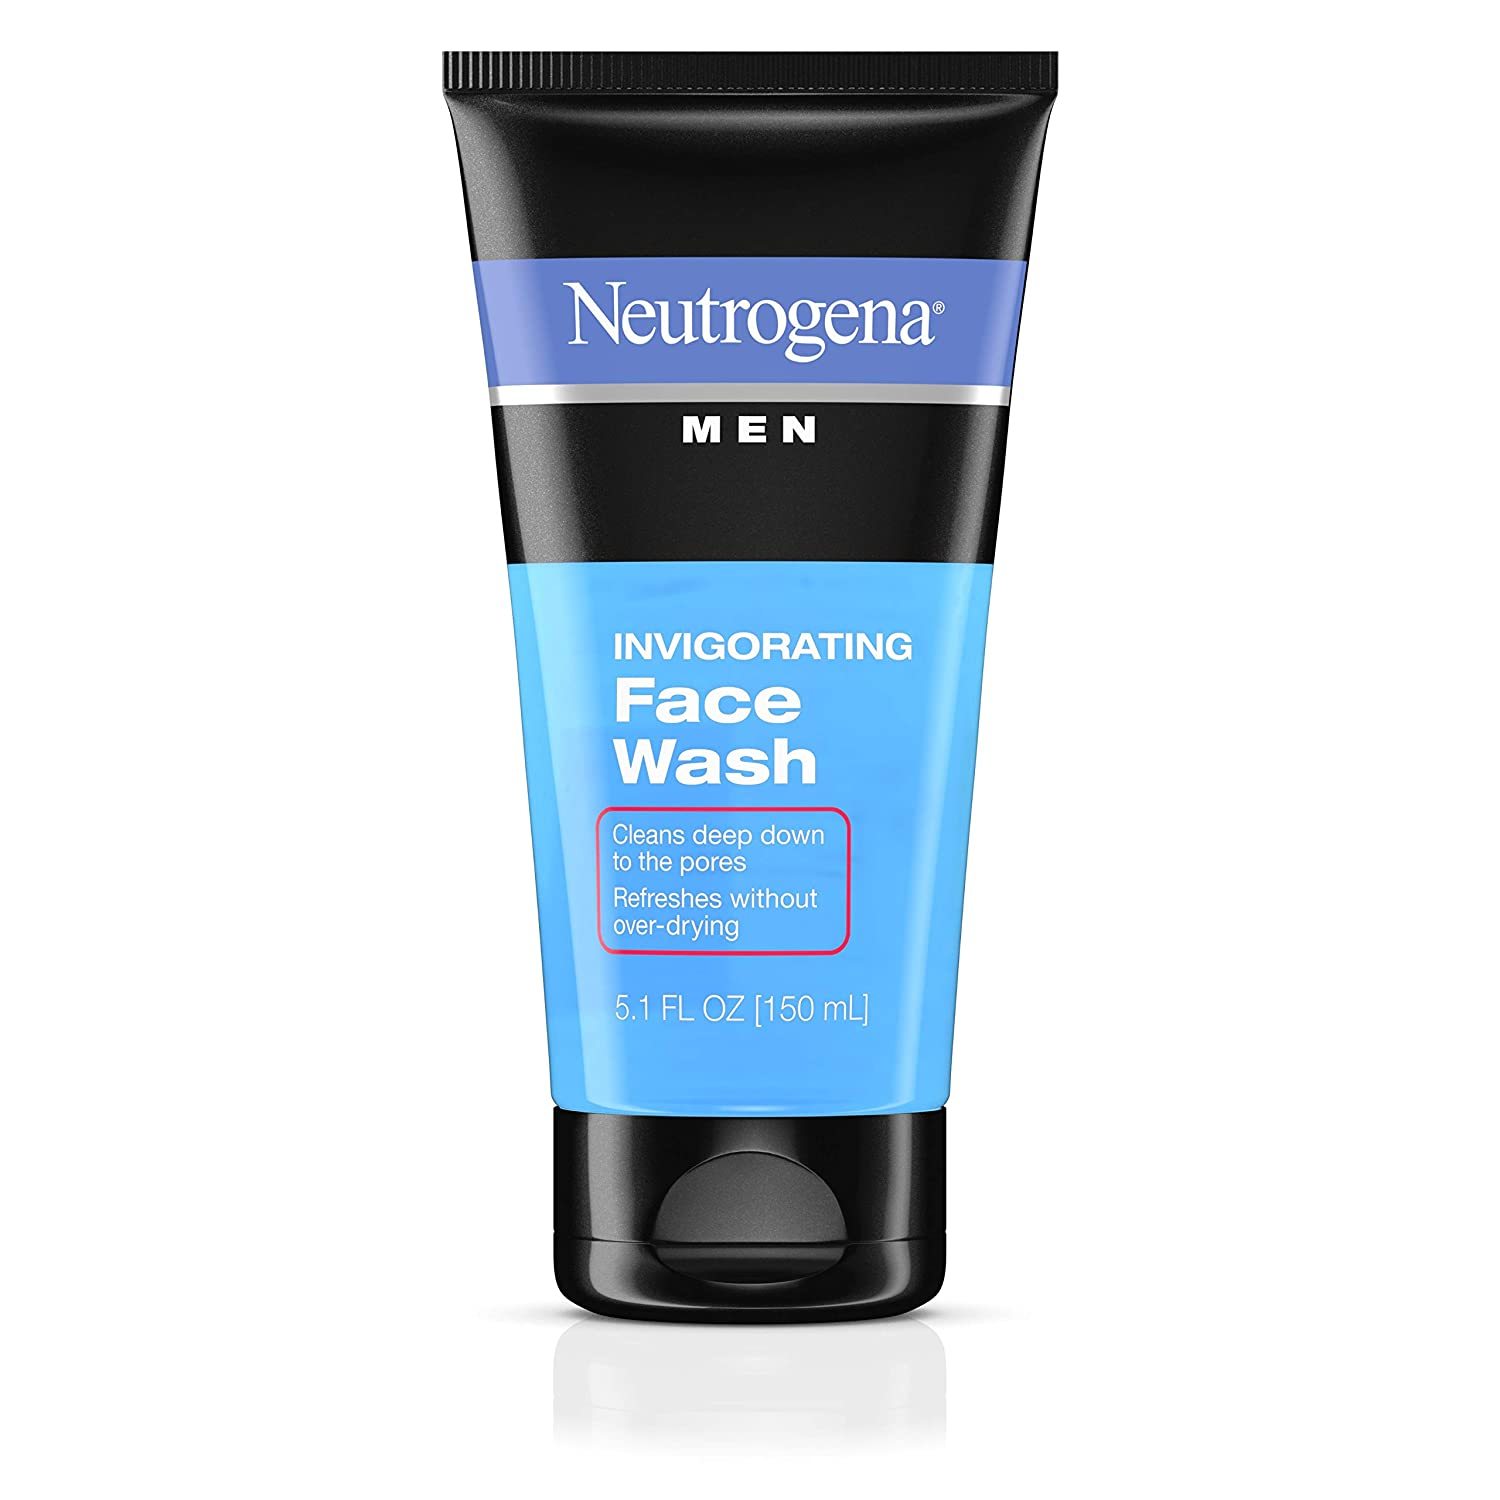 Neutrogena Men's Invigorating Daily Foaming Gel Face Wash, Energizing & Refreshing Oil-Free Facial Cleanser for Men, 5.1 fl. oz